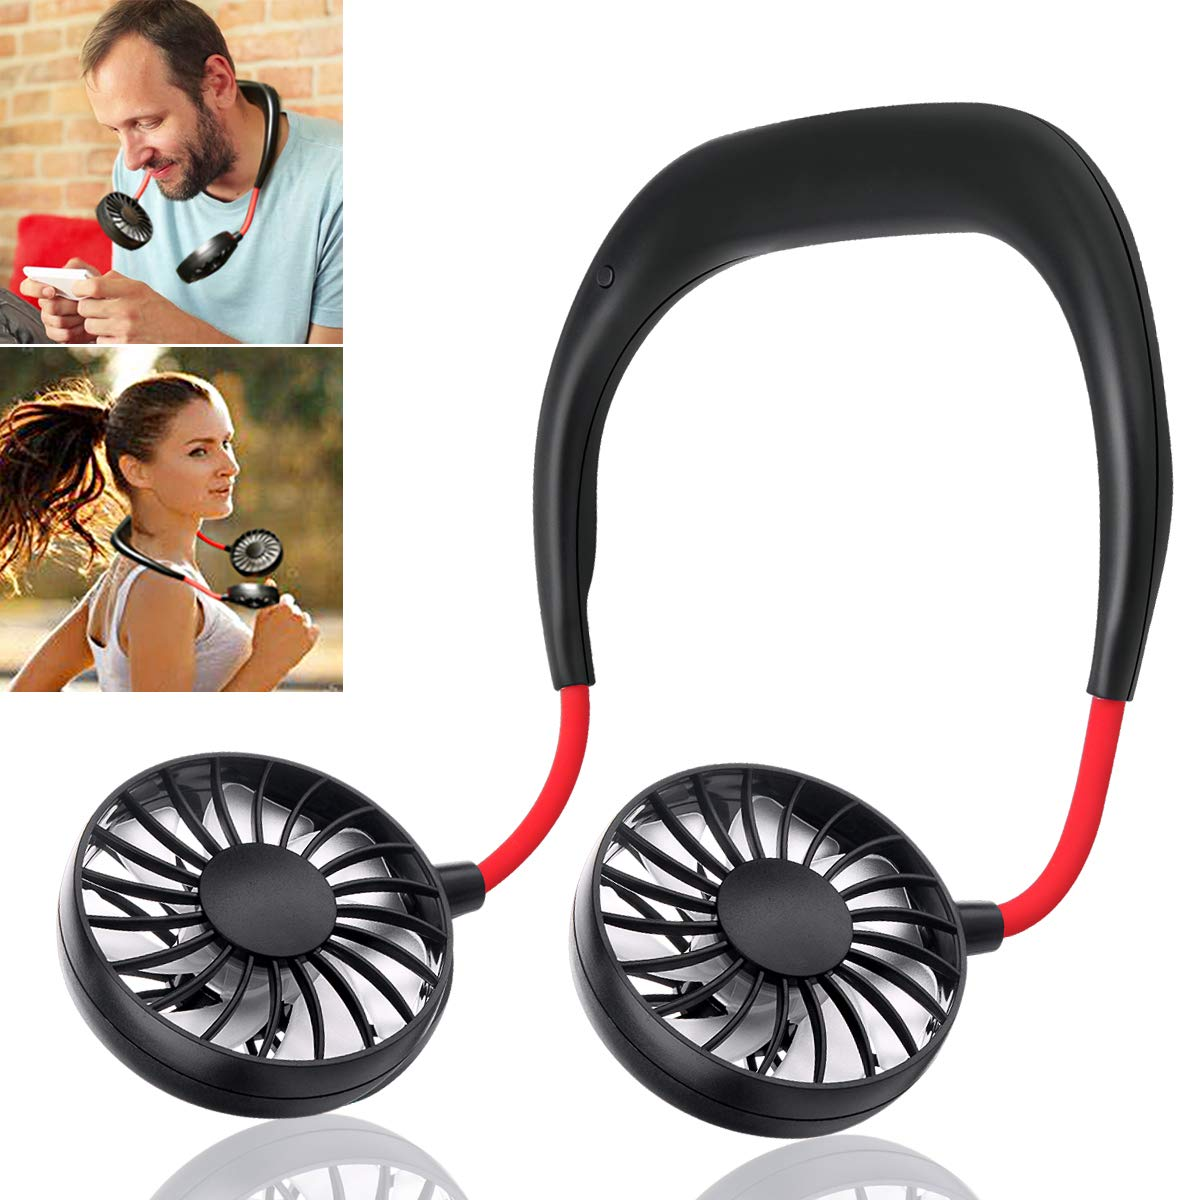 Hand Free Personal Fan - Portable USB Battery Rechargeable Mini Fan - Headphone Design Wearable Neckband Fan Necklance Fan Cooler Fan with Dual Wind Head for Traveling Outdoor Office Room (Black) by OPOLEMIN